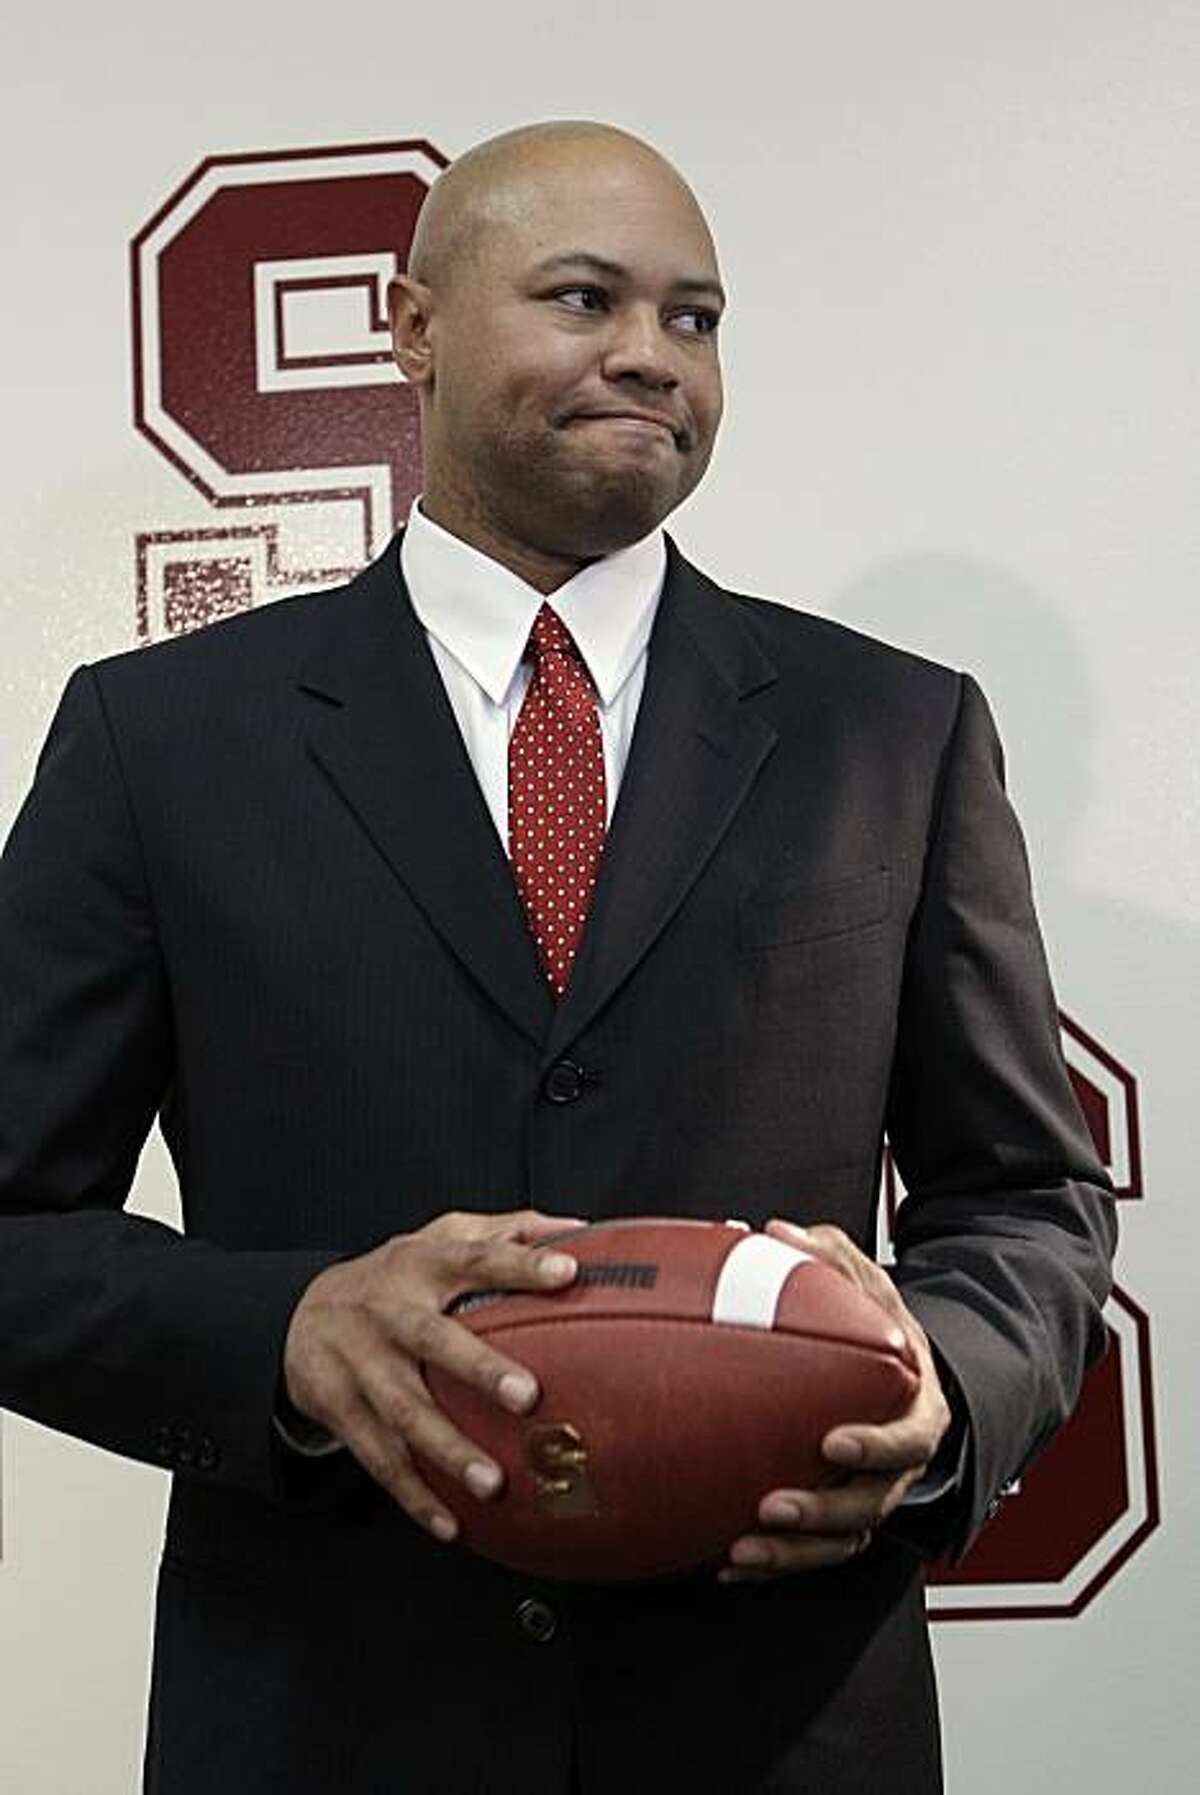 New Stanford football coach David Shaw poses for a photograph after a news conference in Stanford, Calif., Thursday, Jan. 13, 2011. Shaw replaces Jim Harbaugh, who left to become coach of the San Francisco 49ers.